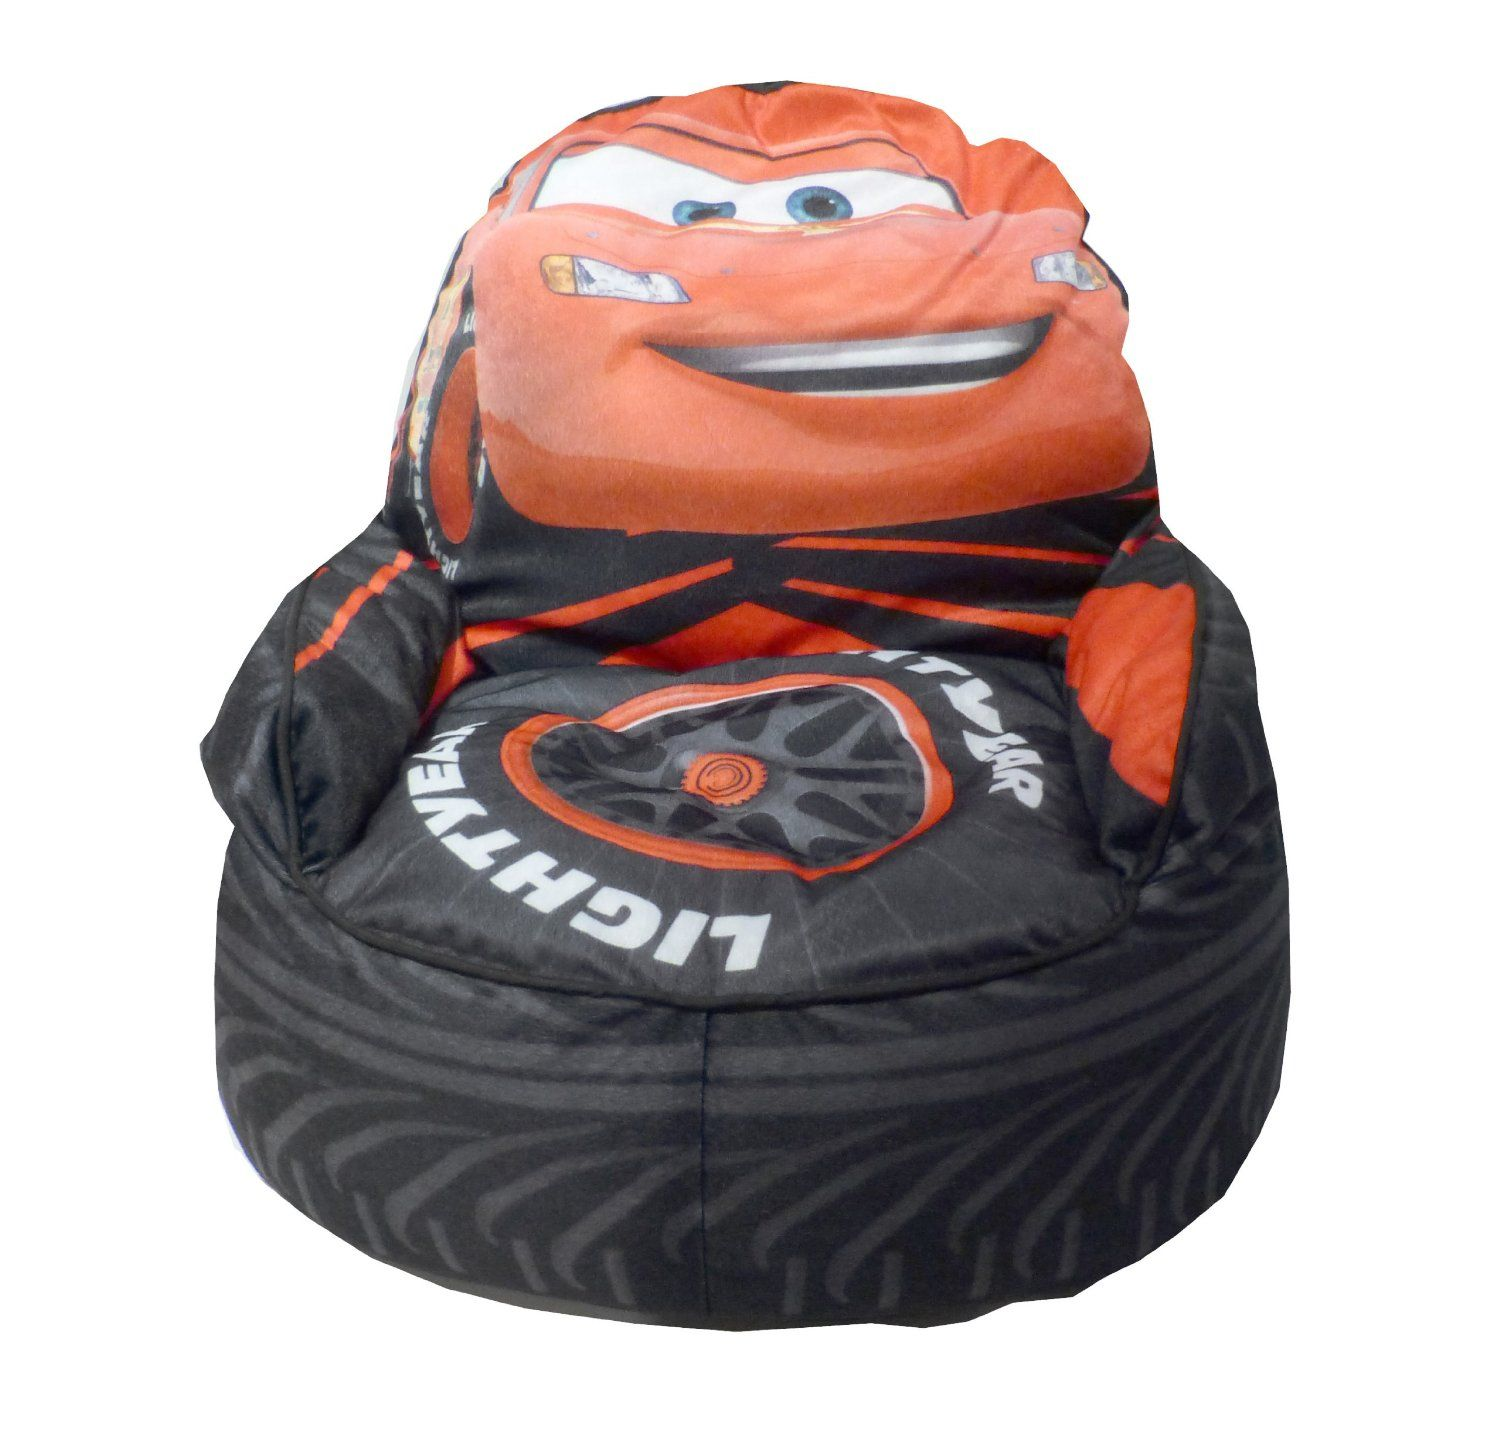 Cool Bean Bag Chairs Small Kitchen Table And Chair Sets Disney Cars Lightning Mcqueen